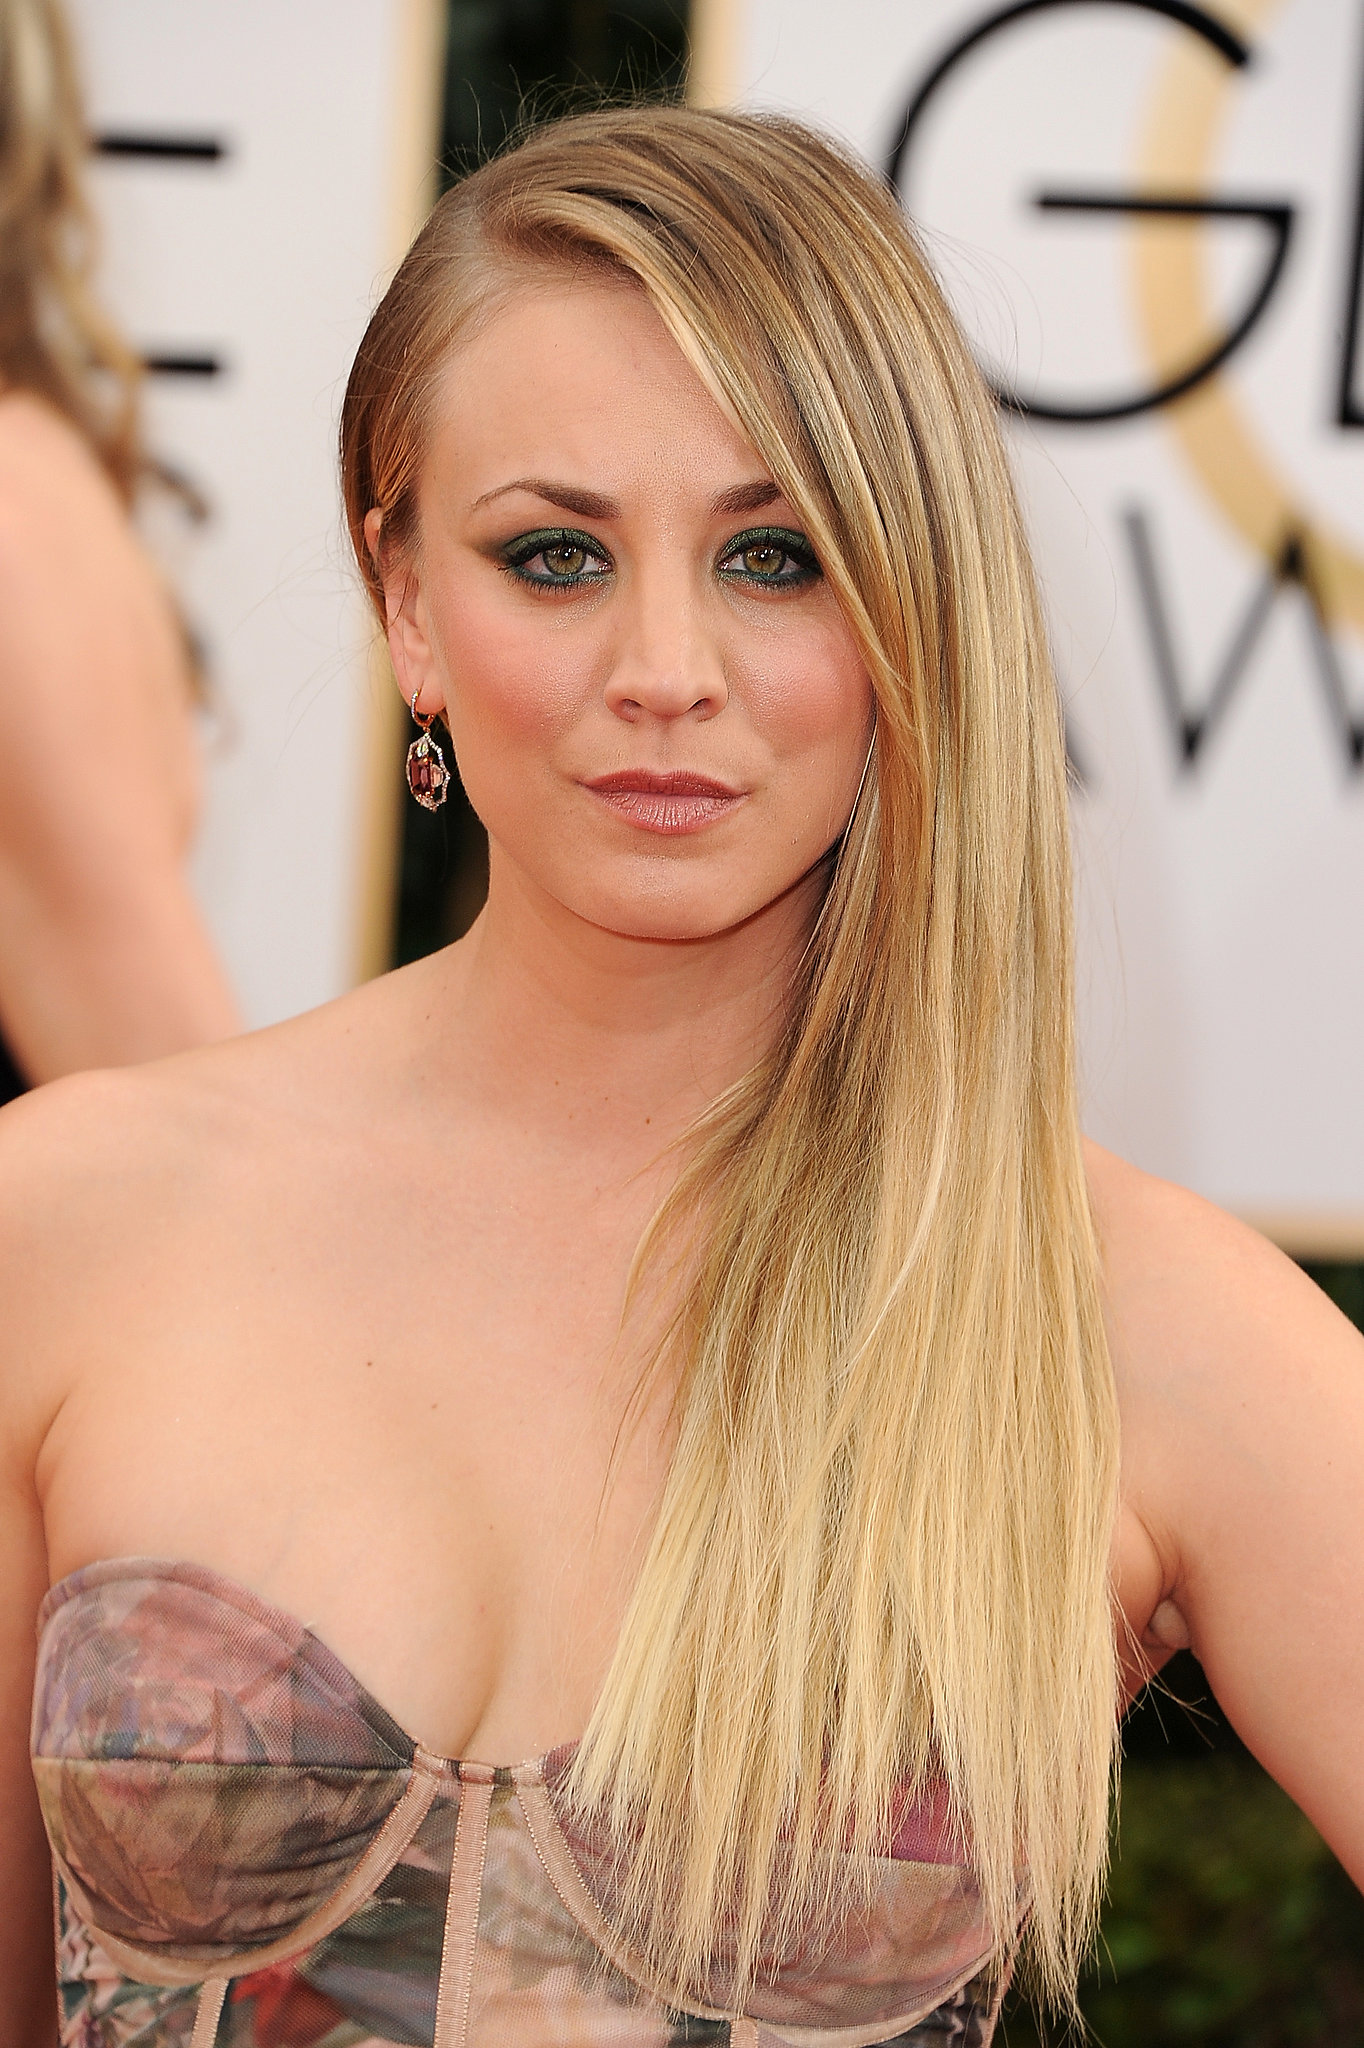 Kaley Cuoco Kaley Cuoco39s Makeup by Mark Cosmetics Golden Globes